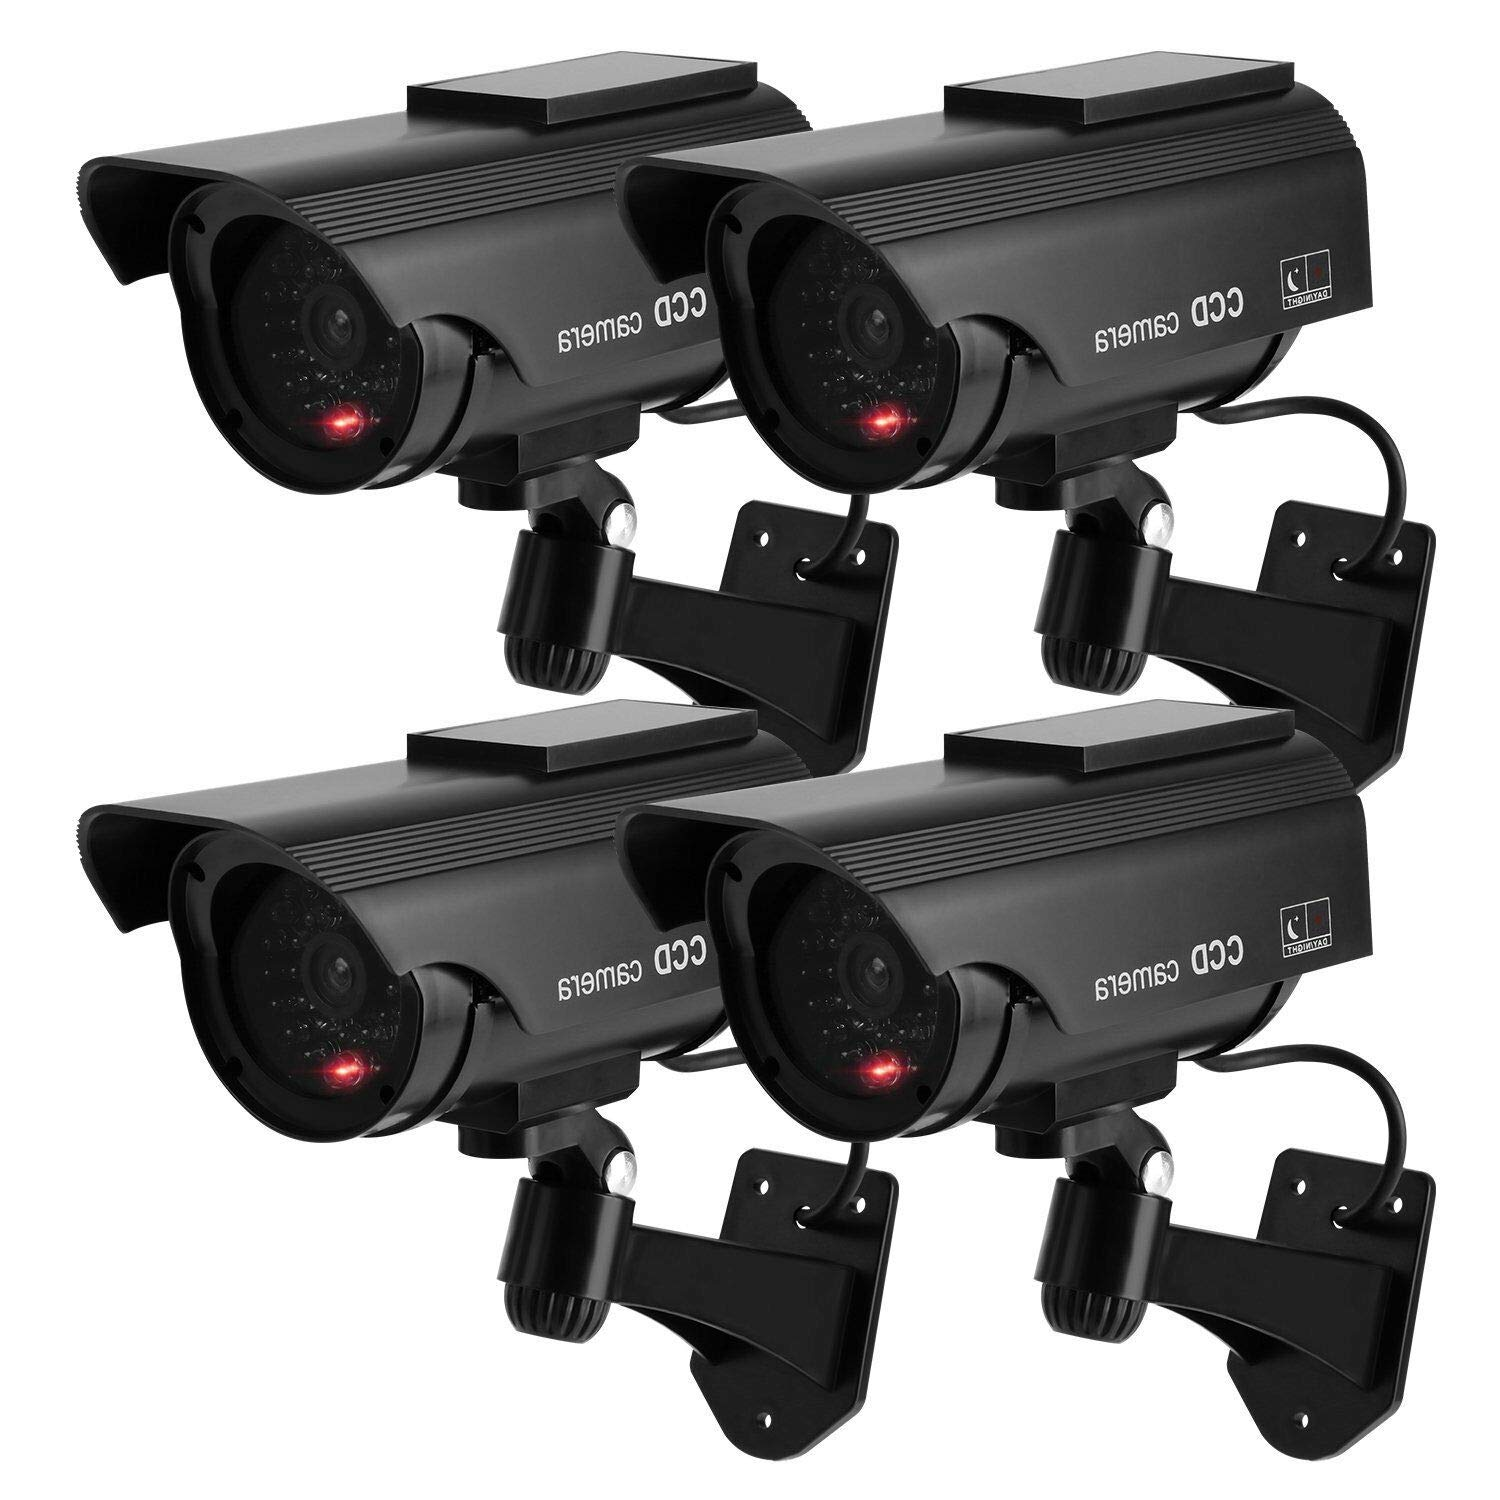 OCGIG Solar Powered Bullet Dummy Fake Security CCTV Cameras with Flashing Light Surveillance Cameras Outdoor Indoor Use for Household & Workplace,4 Pack by OCGIG